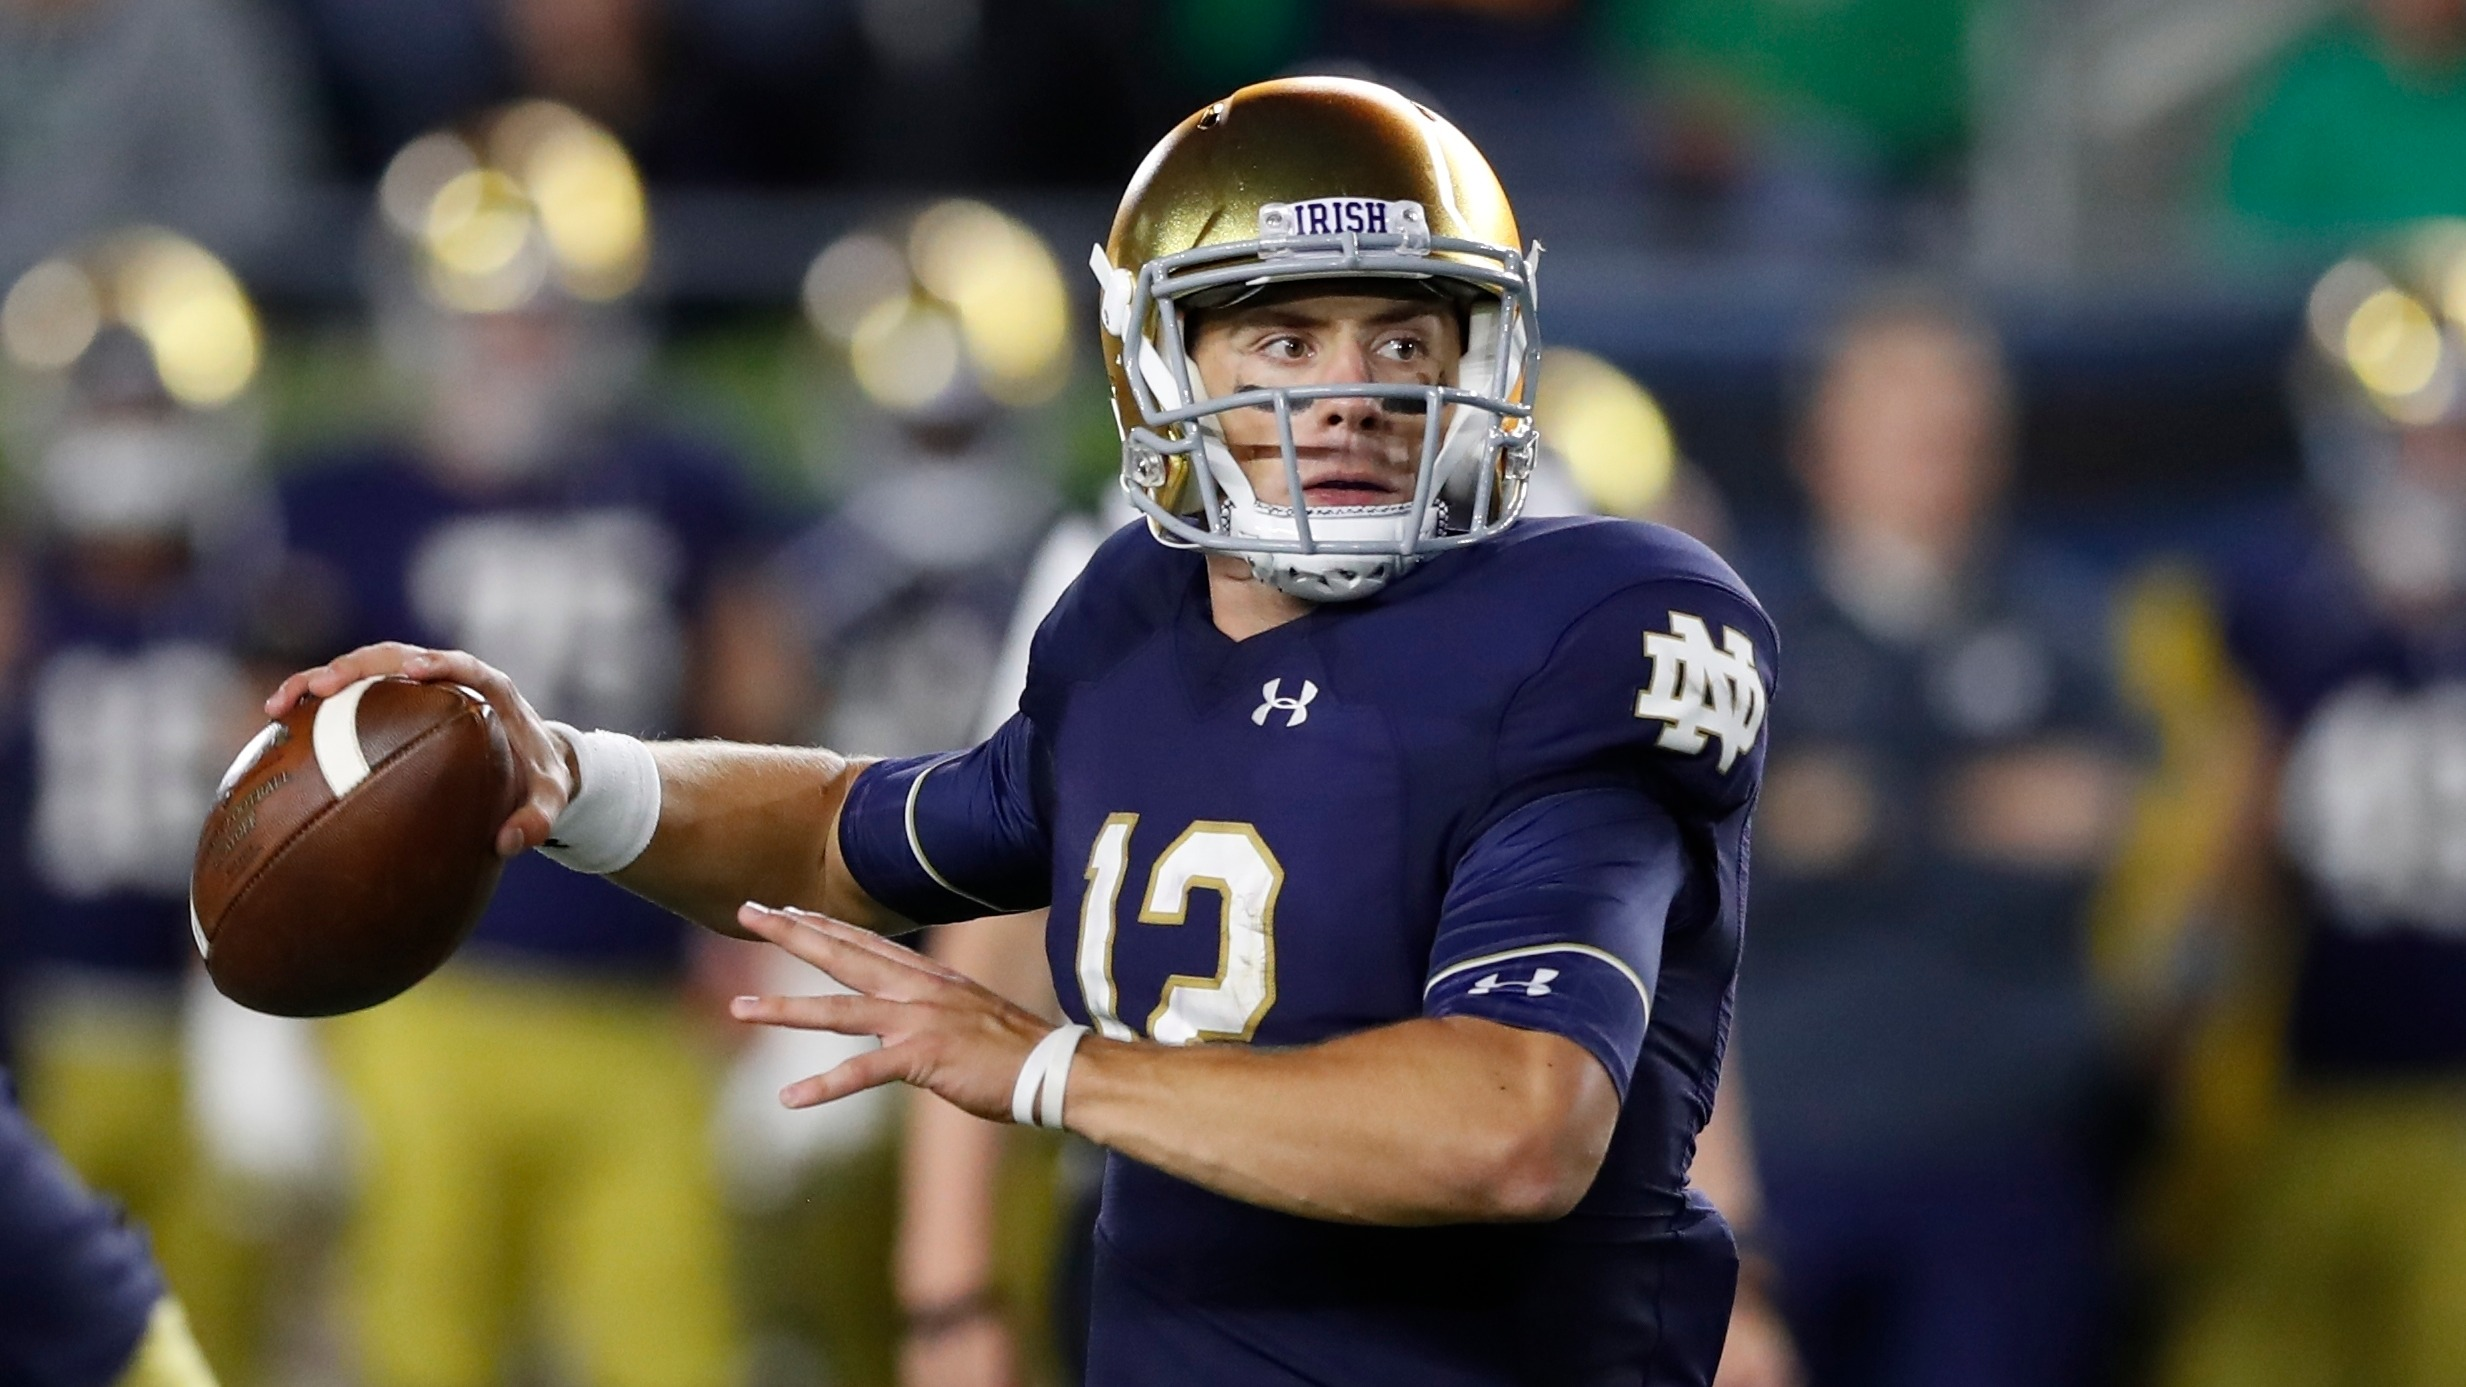 Notre dame navy betting line vip nfl betting spreads